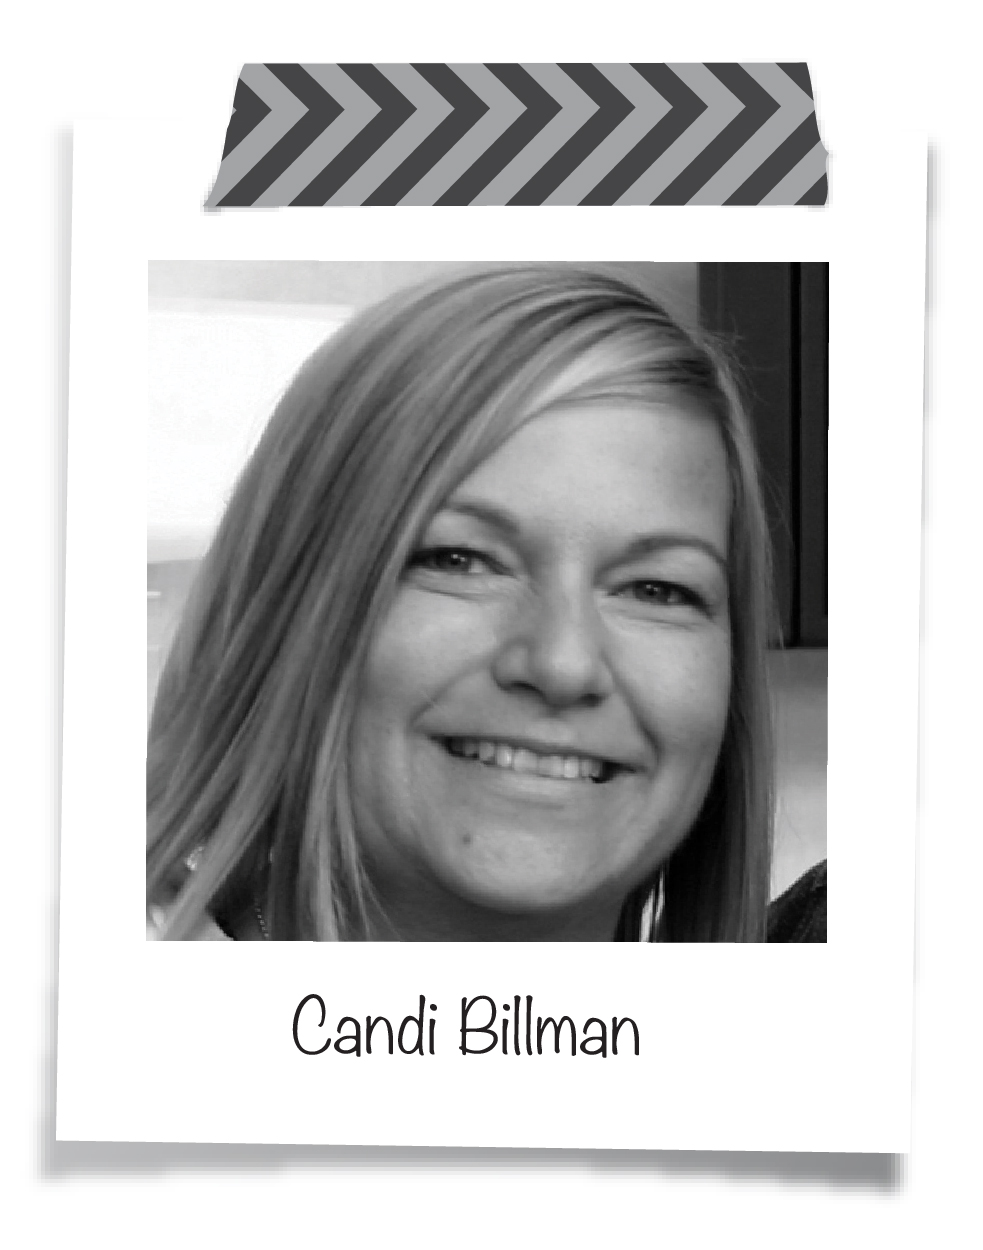 mambi Design Team member Candi Billman